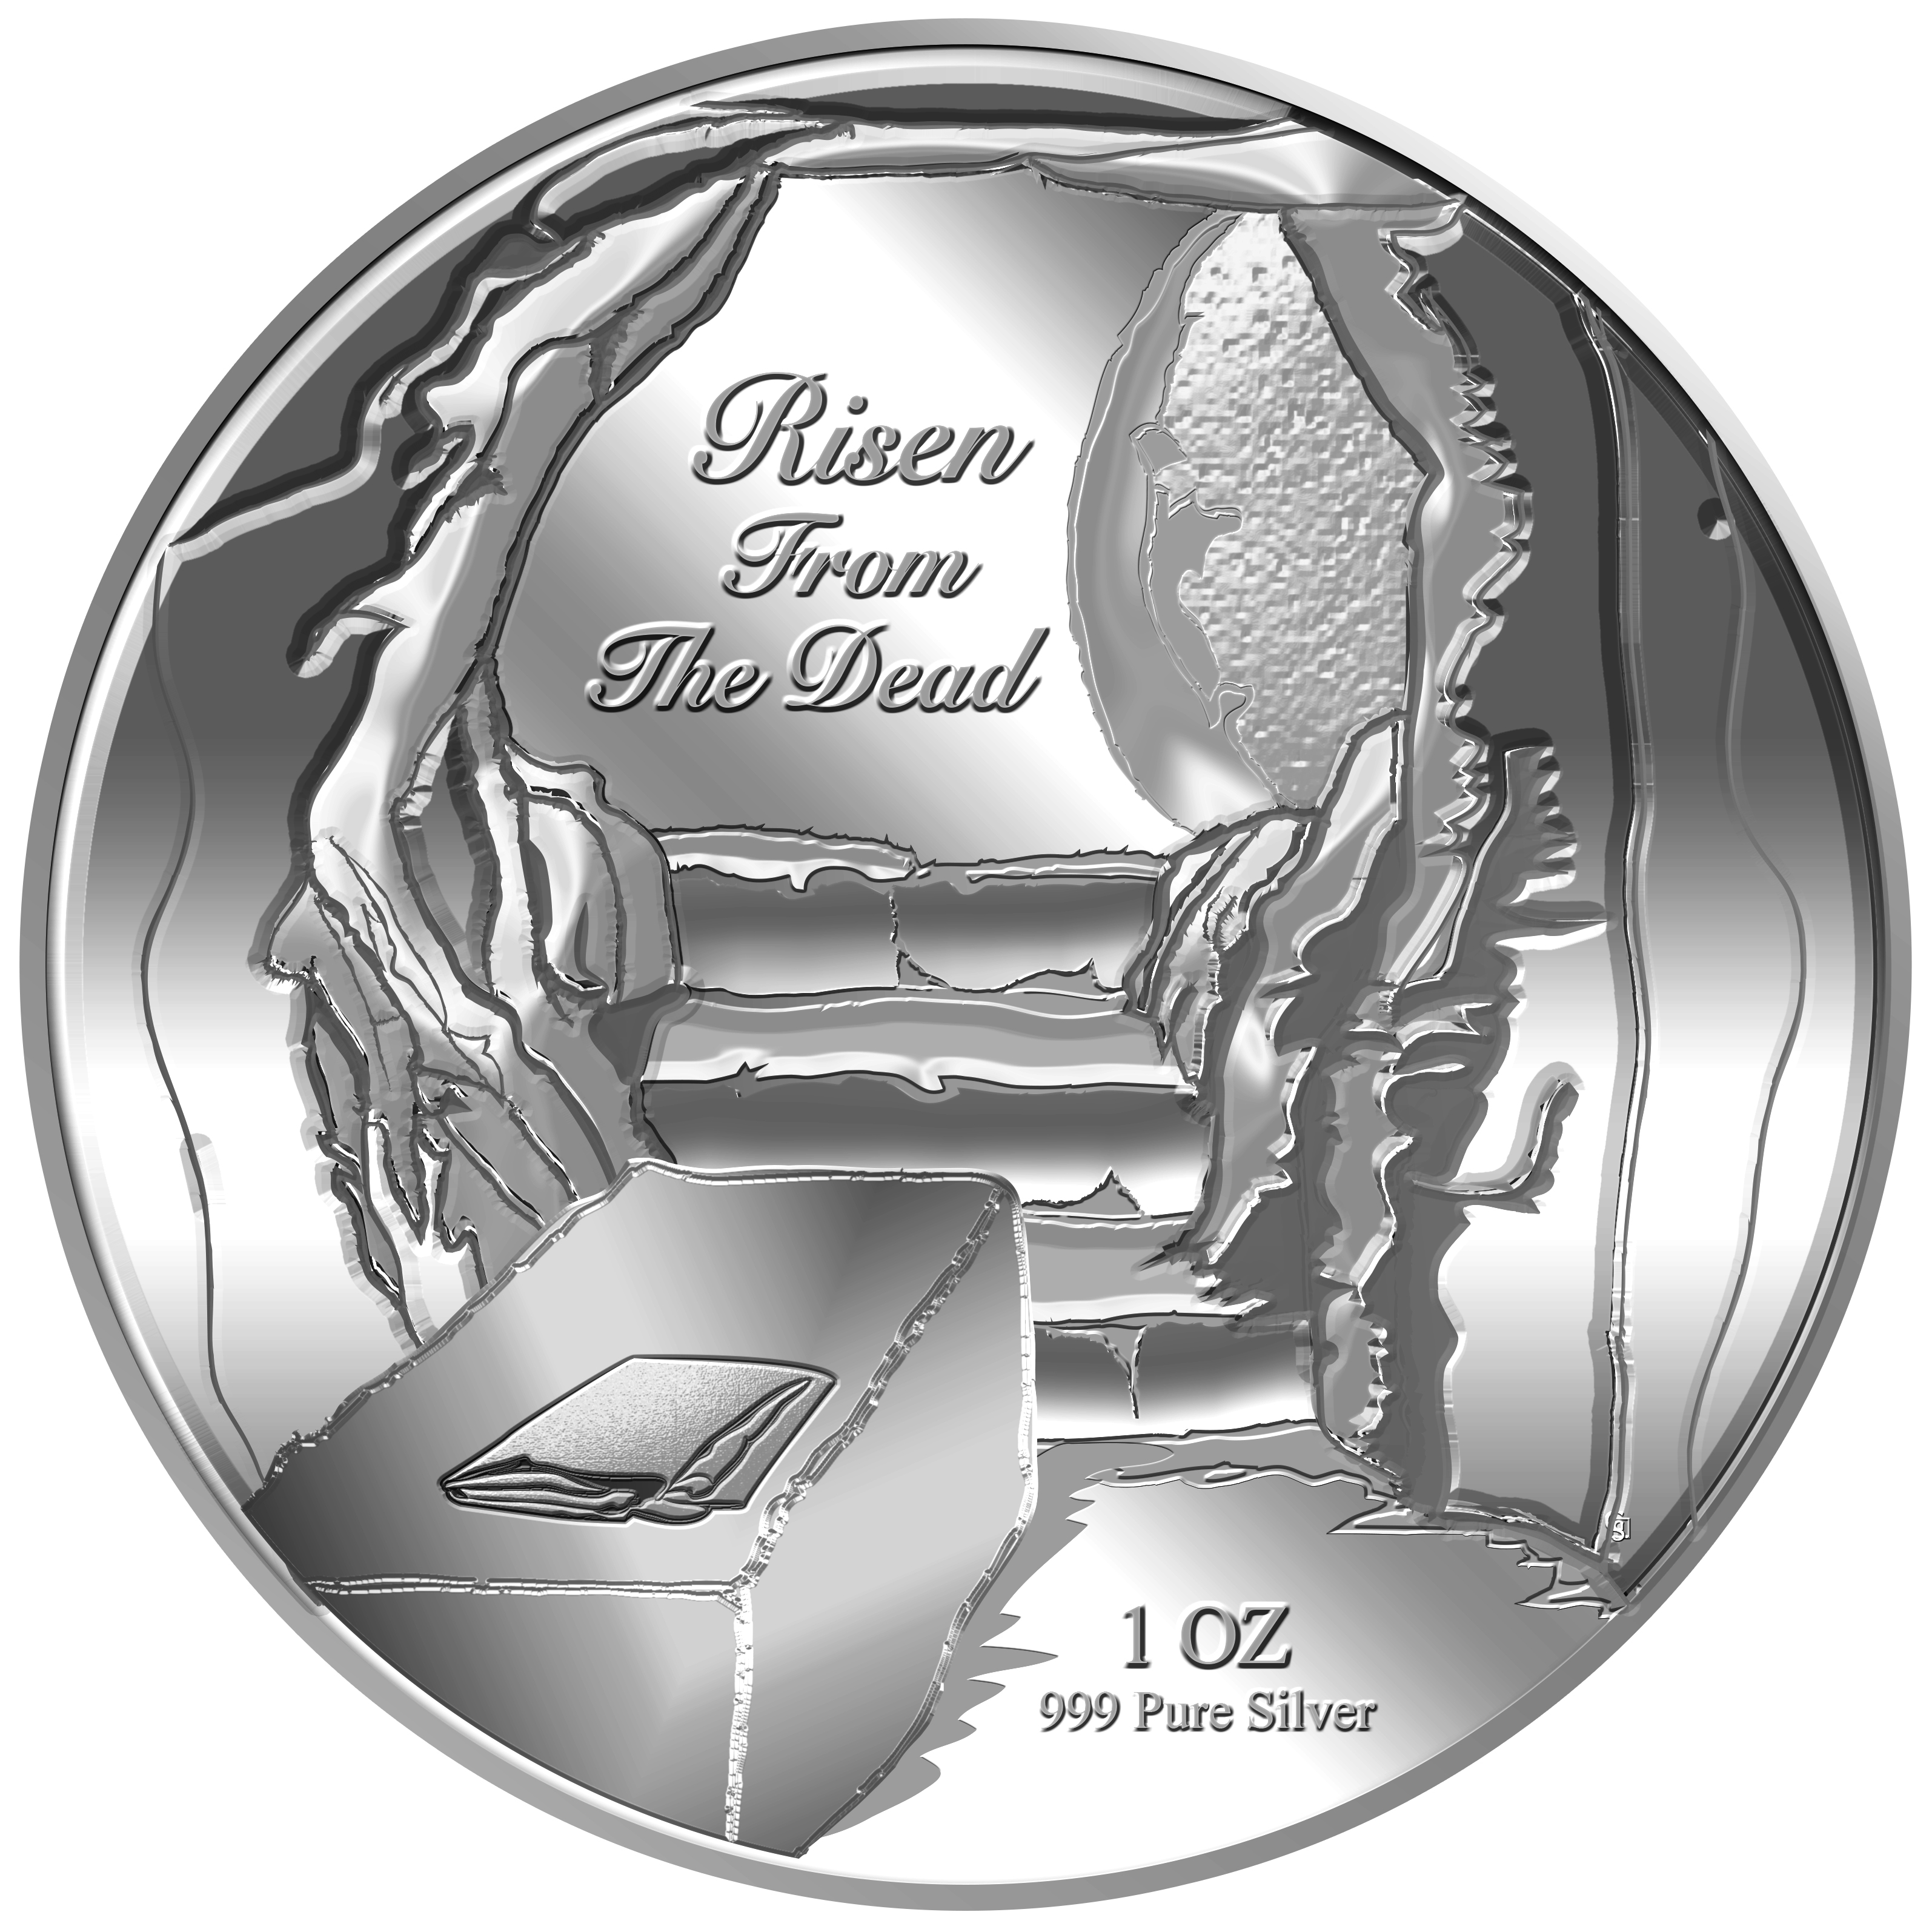 1oz Risen From The Dead Silver Coin (10TH LAUNCH)